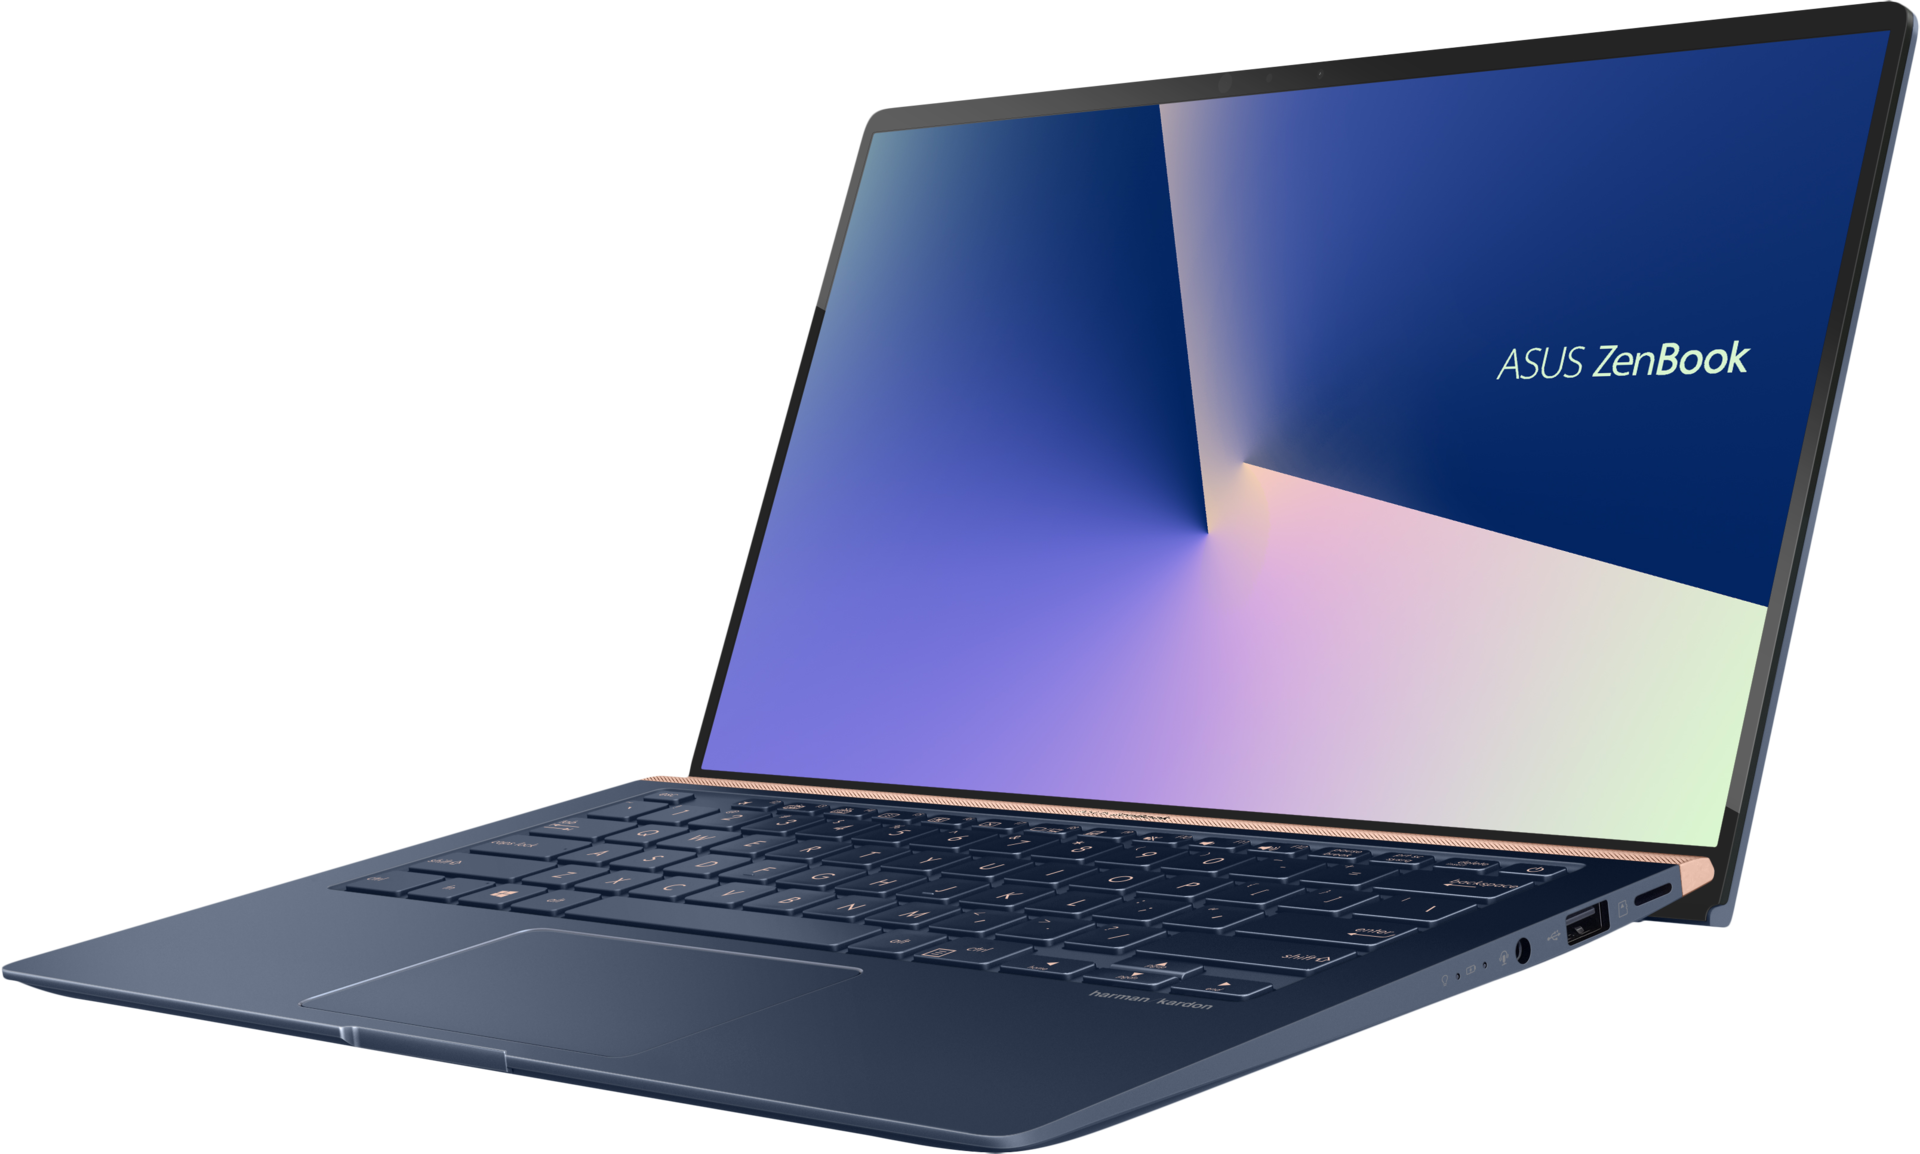 Asus Now Shipping Zenbook Ux333 433 533 Series With Narrow Bezels On